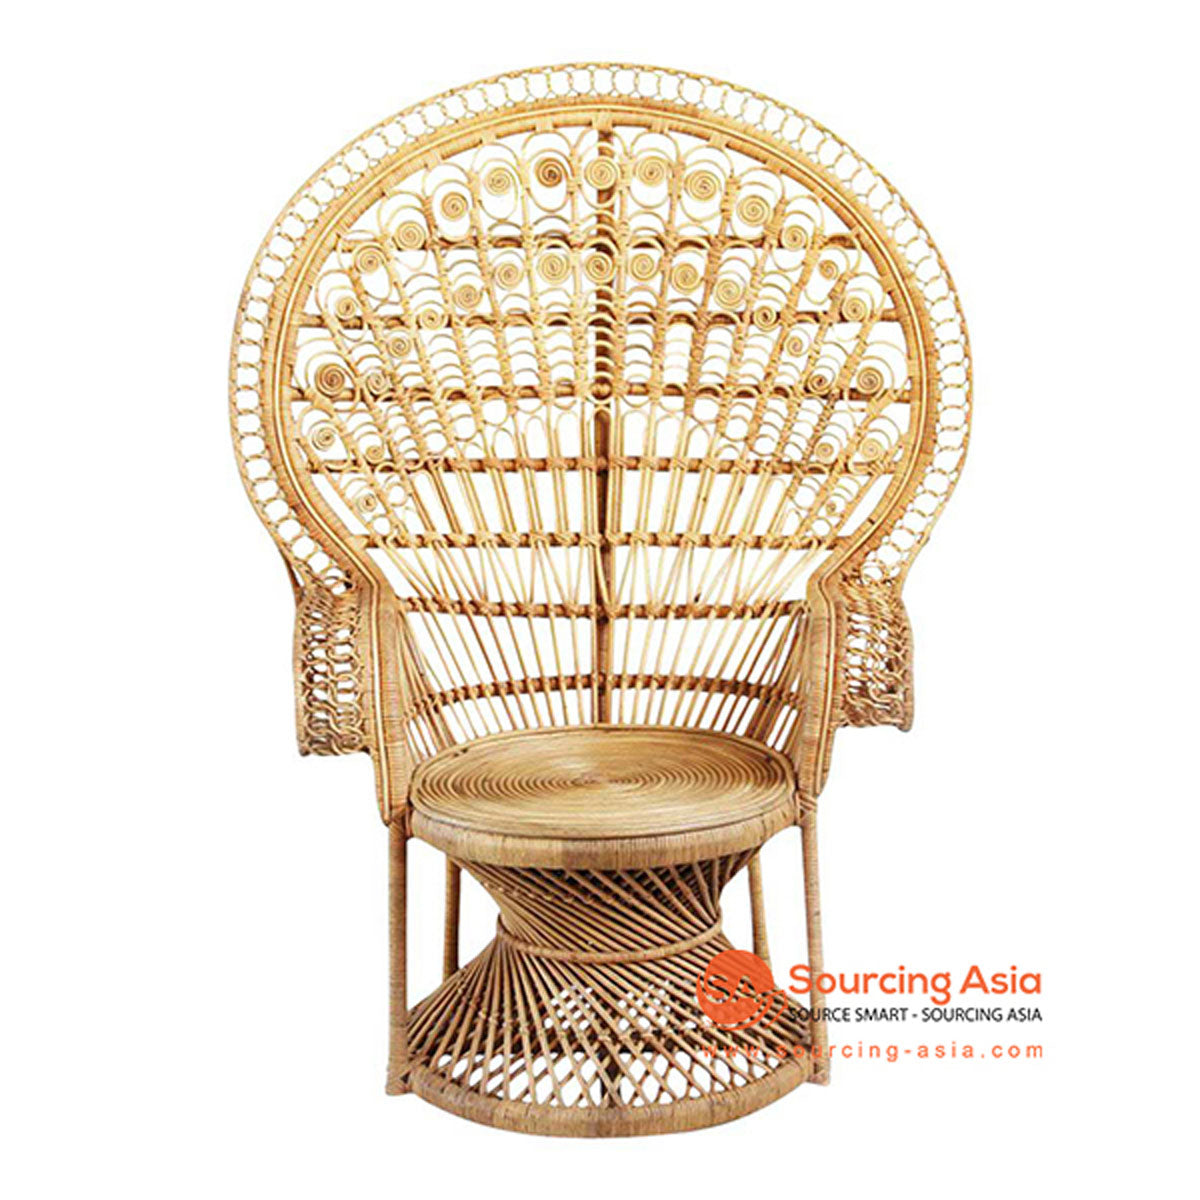 SHL127 NATURAL RATTAN DECORATIVE PEACOCK DESIGN UPHOLSTERED CHAIR